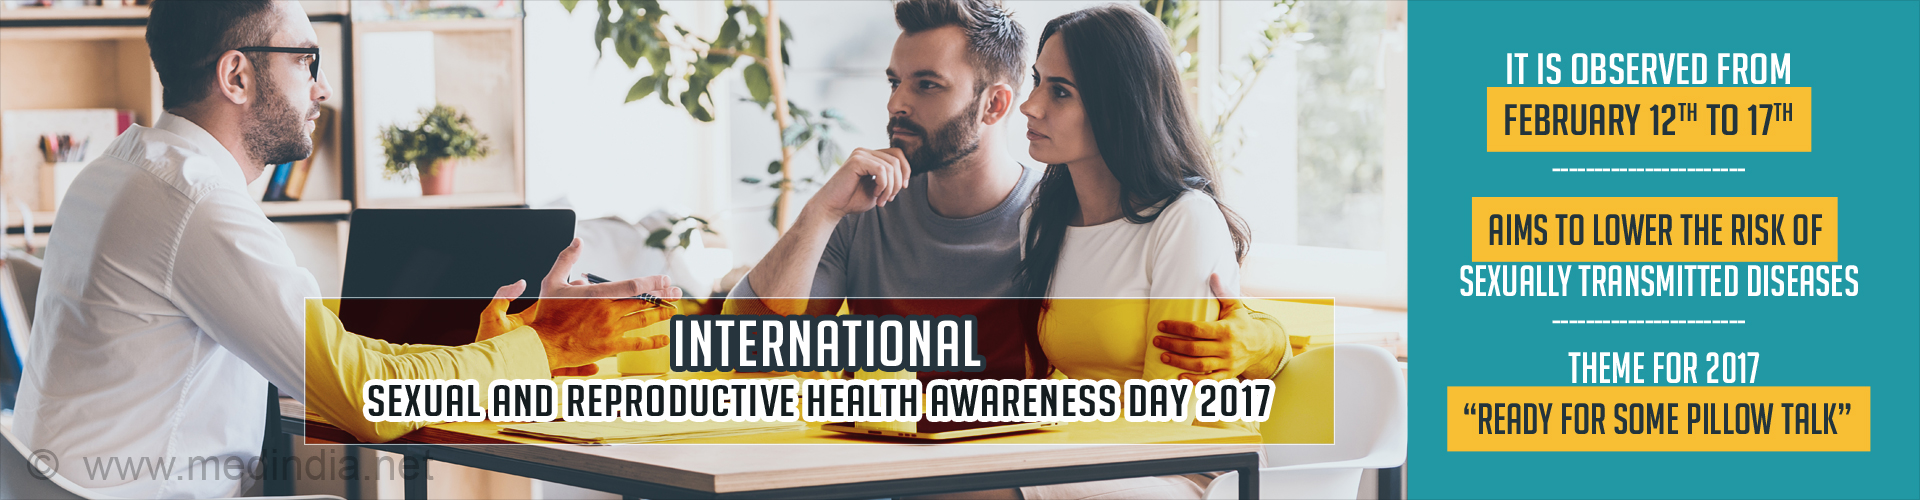 International Sexual and Reproductive Health Awareness Day 2017